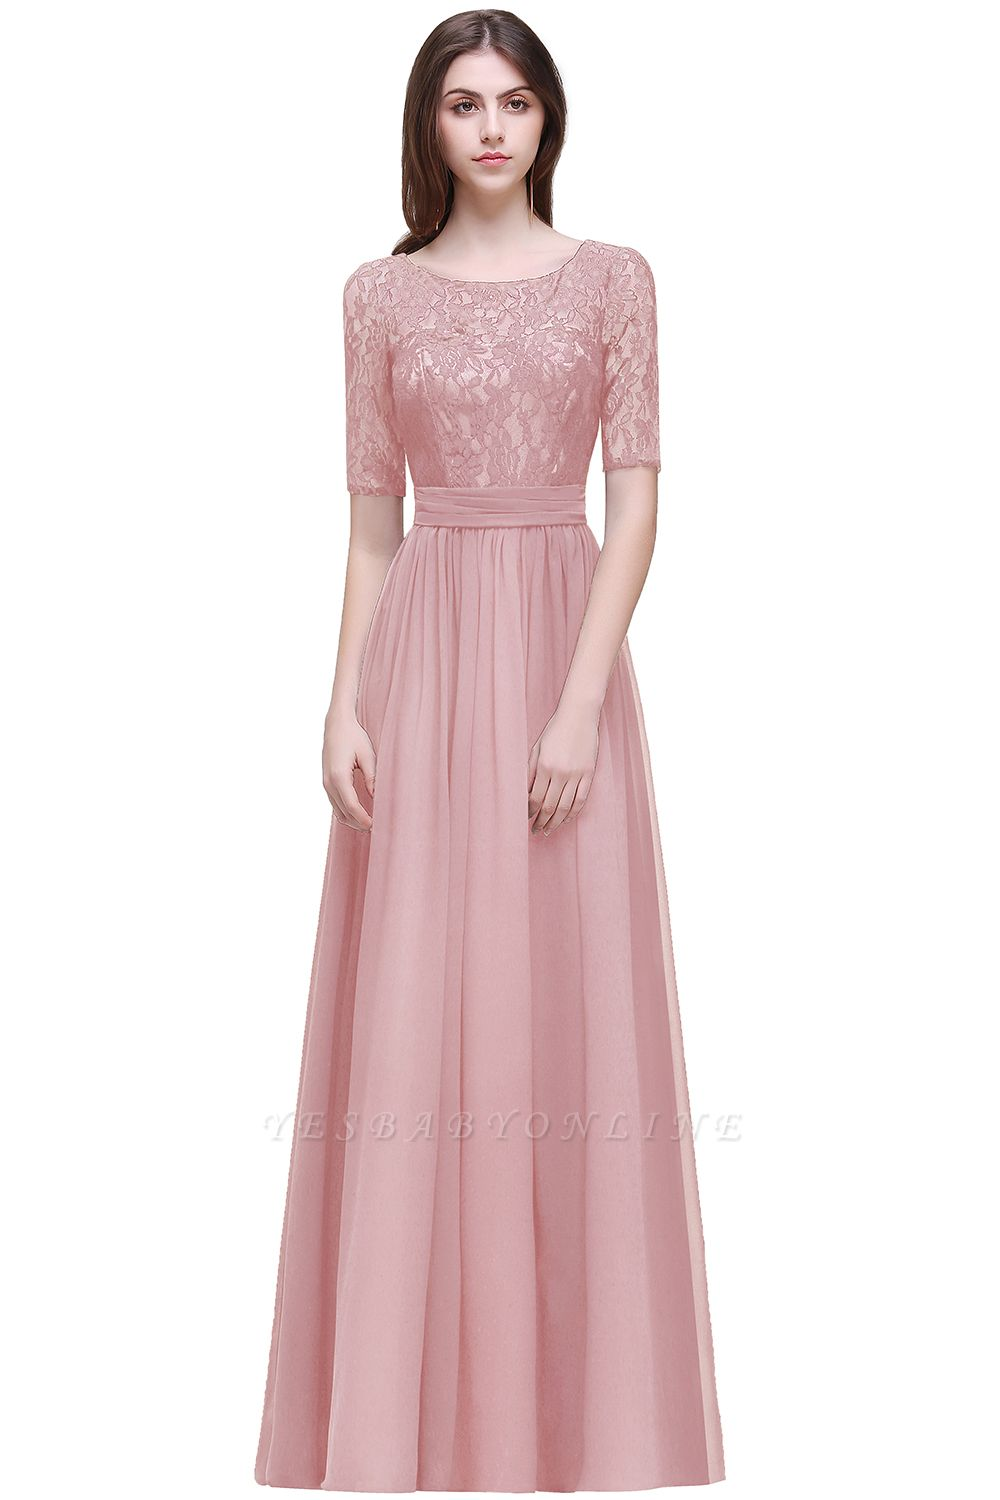 Cheap Half-Sleeve Lace Long Chiffon Evening Dress in Stock